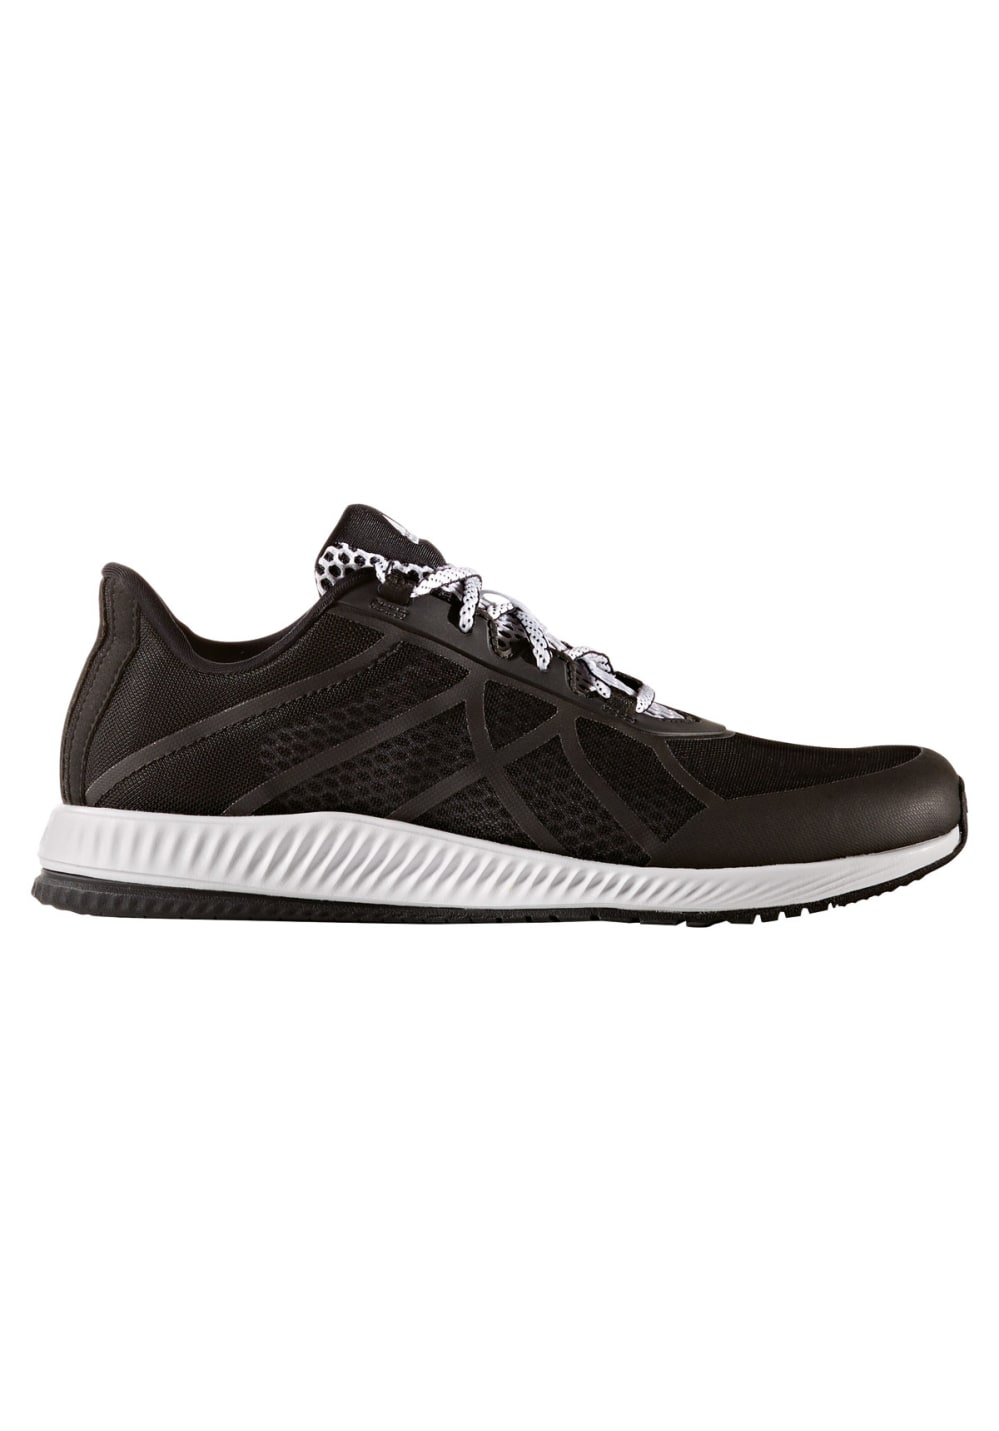 best sneakers 35223 6c75a adidas Gymbreaker Bounce B - Fitness shoes for Women - Black | 21RUN